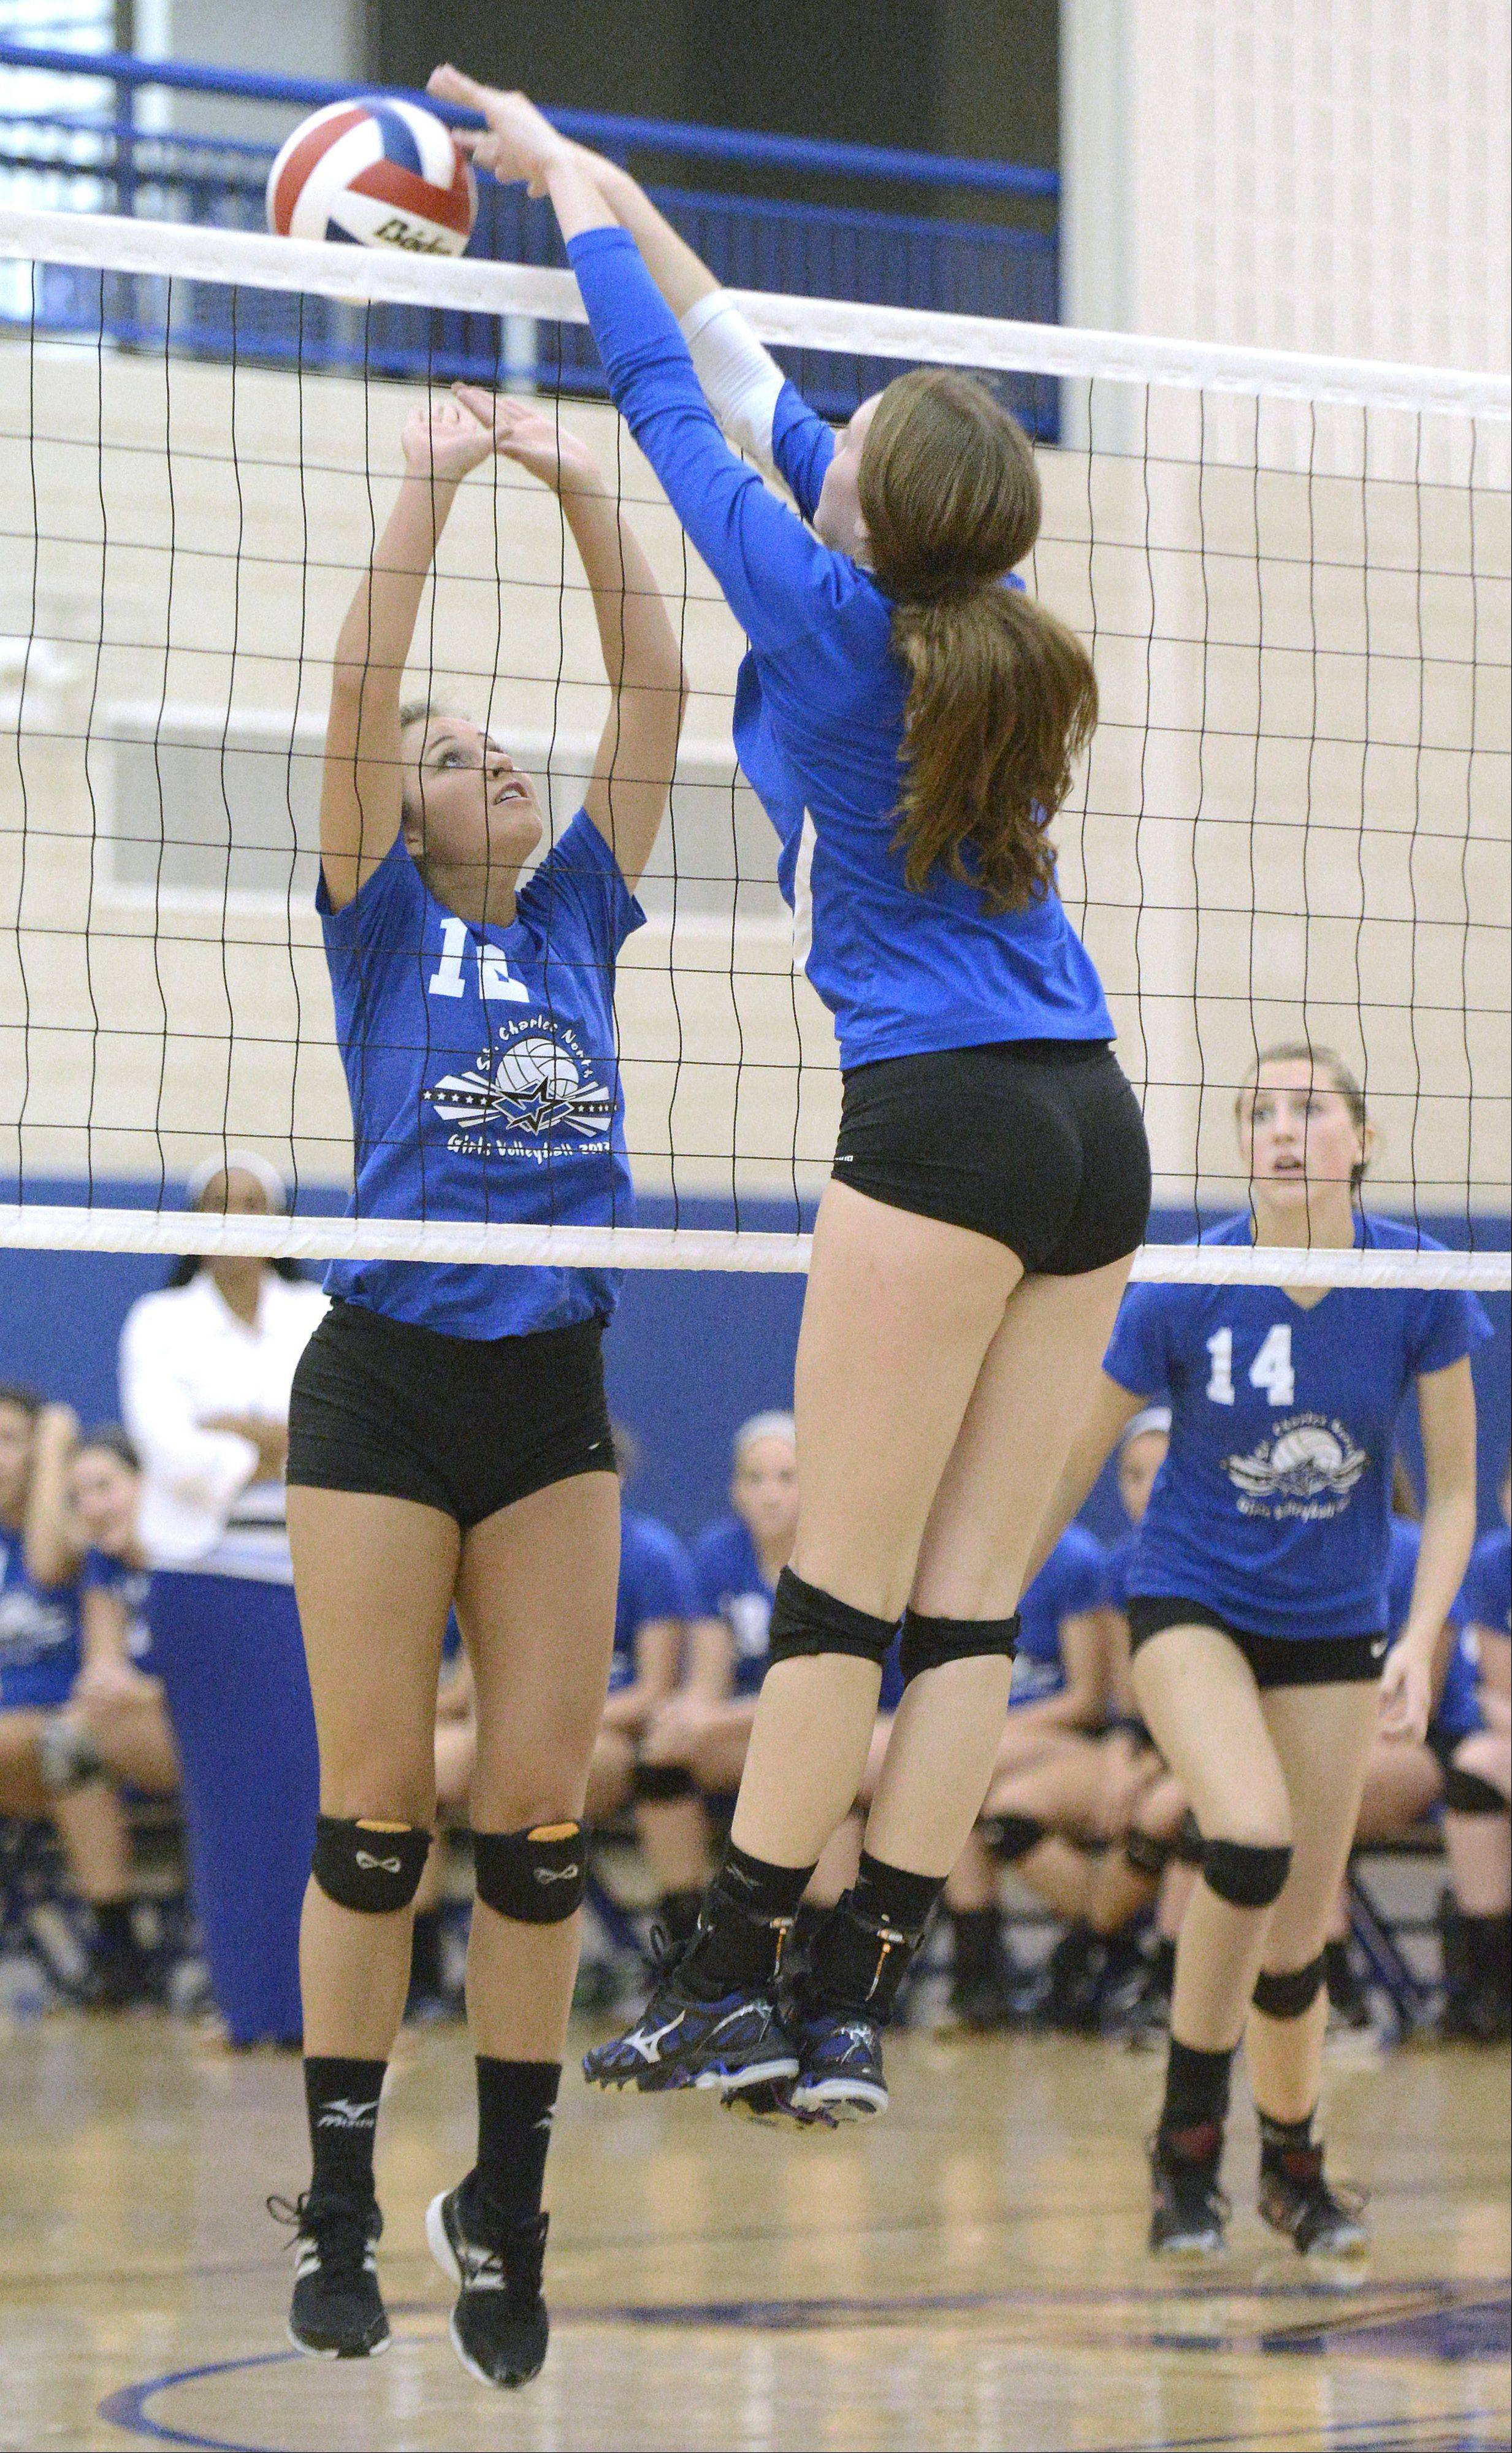 Geneva's Hannah Lanasa tips the ball over the net towards St. Charles North's Sydney Wohlert in the third match on Tuesday, September 24.